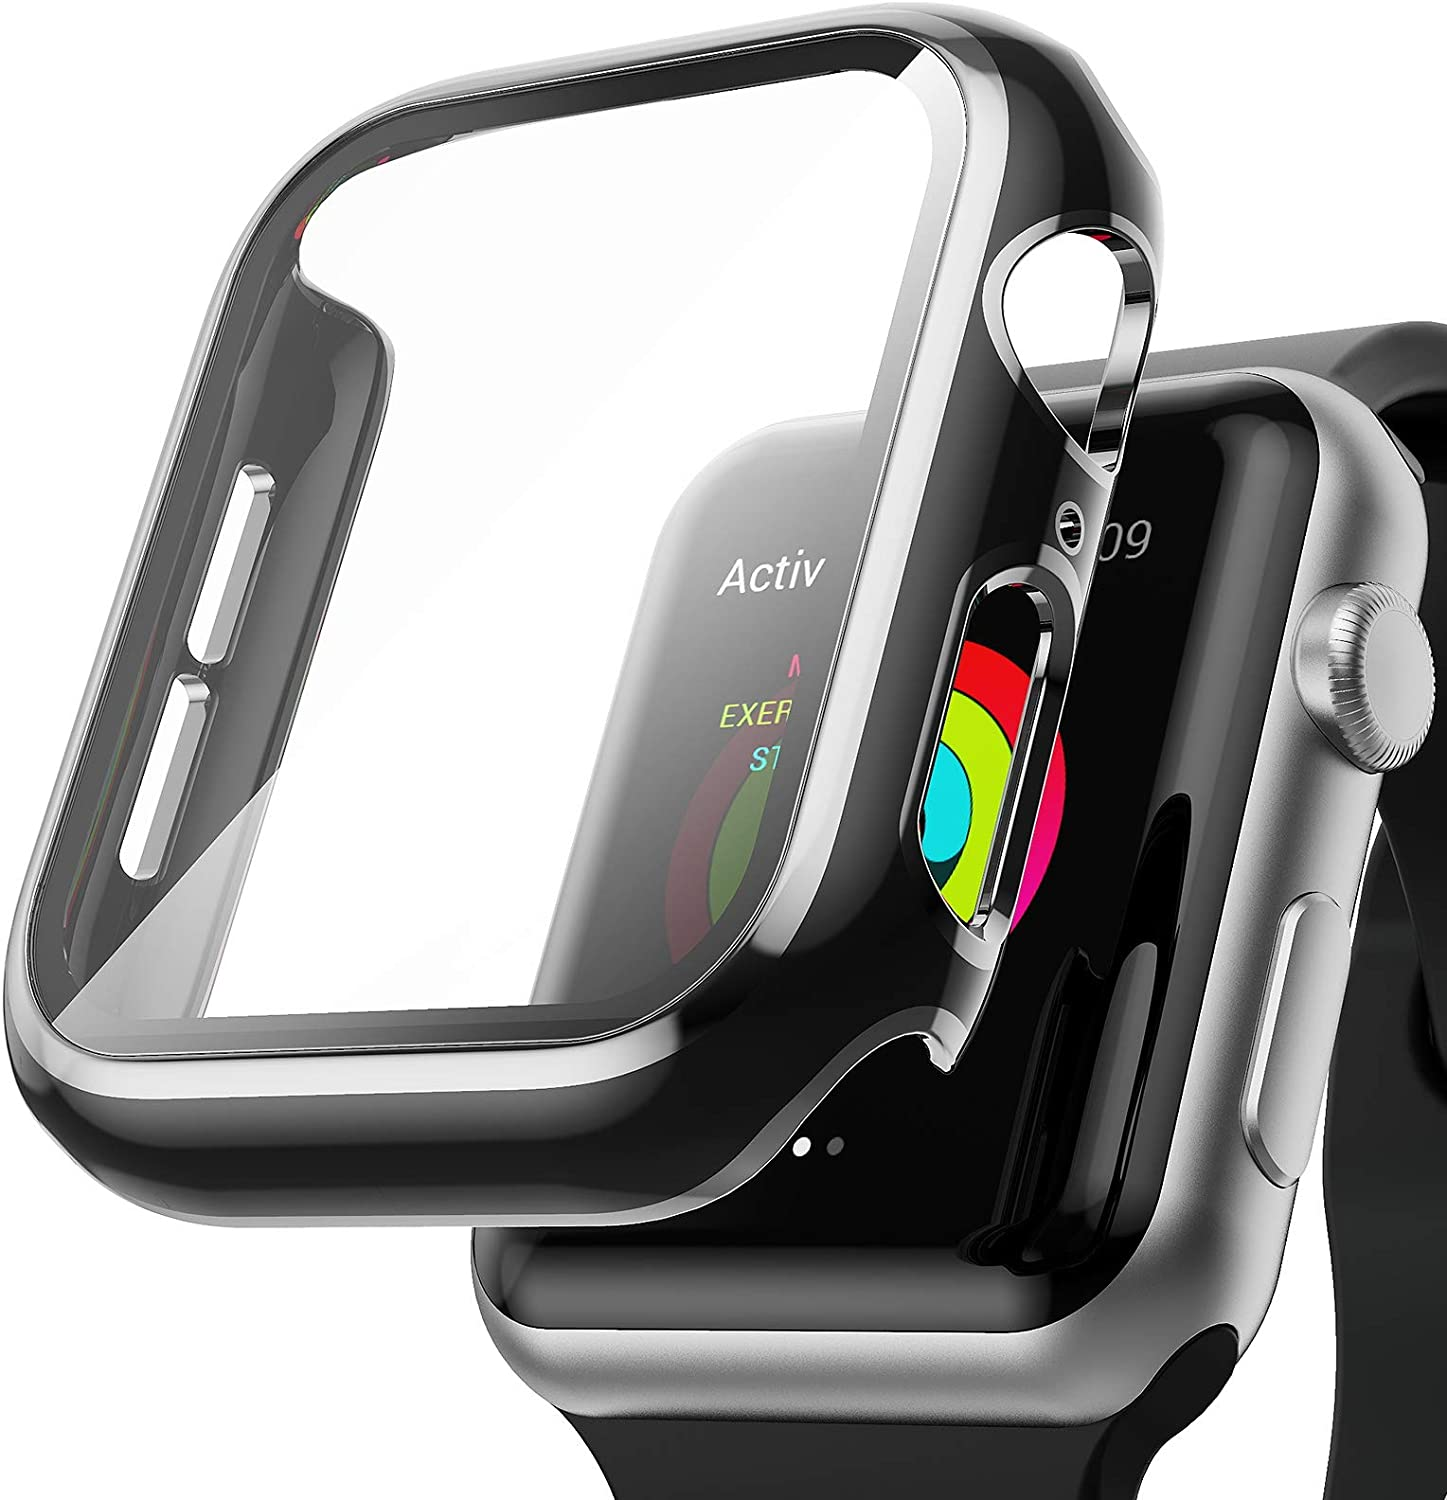 AISIBY Case Compatible with Apple Watch Series 3/2/1 42mm with Built-in Tempered Glass Screen Protector,Silver Edge Black Bumper Full Coverage HD Clear Protective Film Cover for Women Men